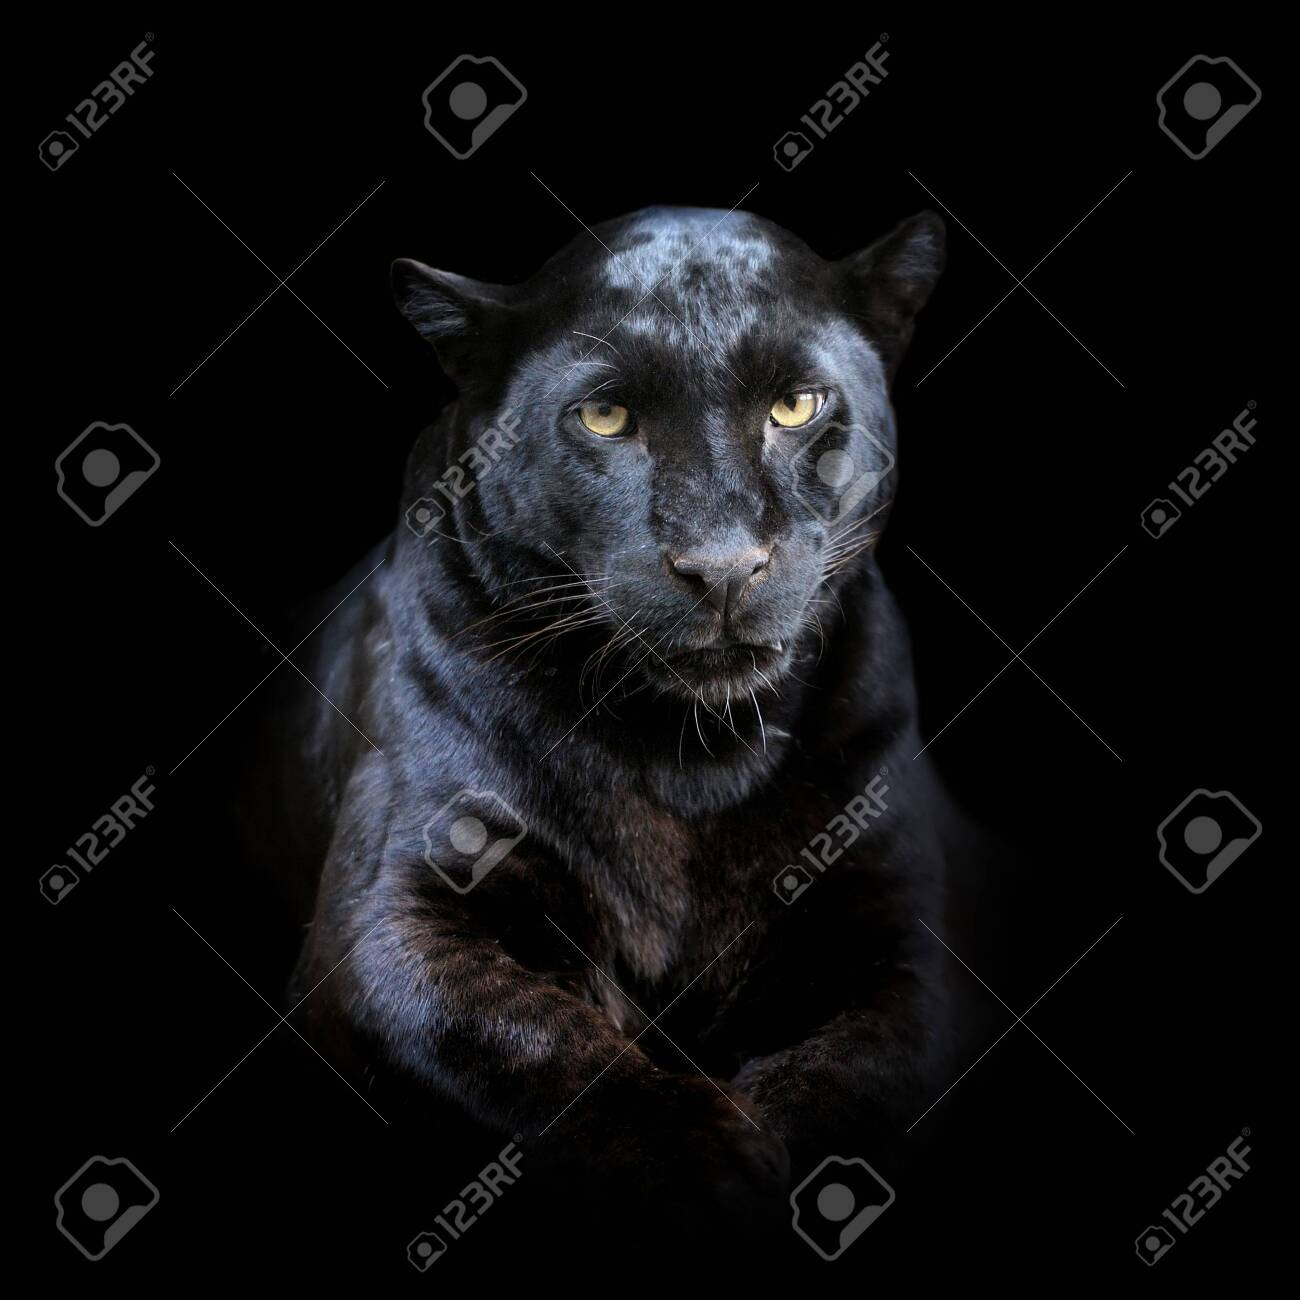 Close up leopard portrait isolated on dark background - 137754942